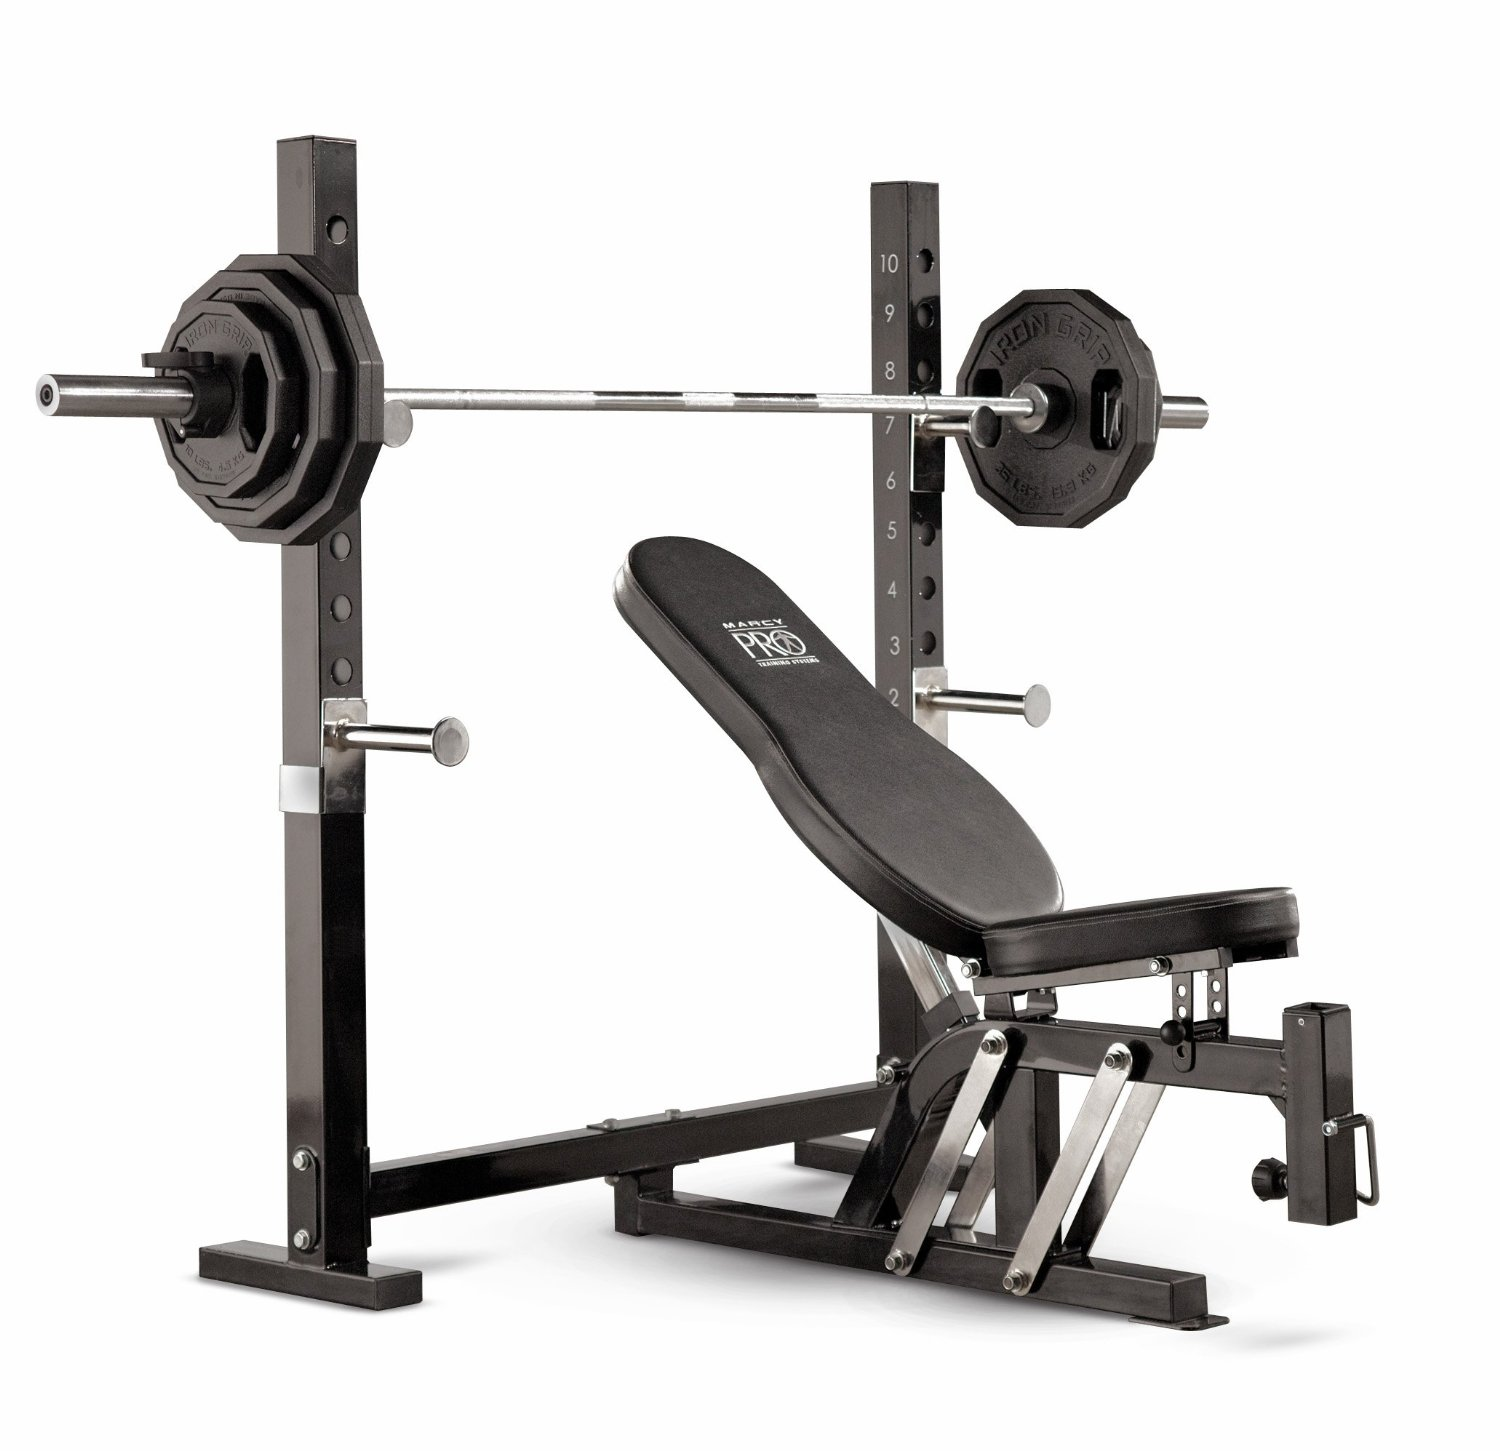 Pin 2 Piece Olympic Weight Bench Marcy On Pinterest